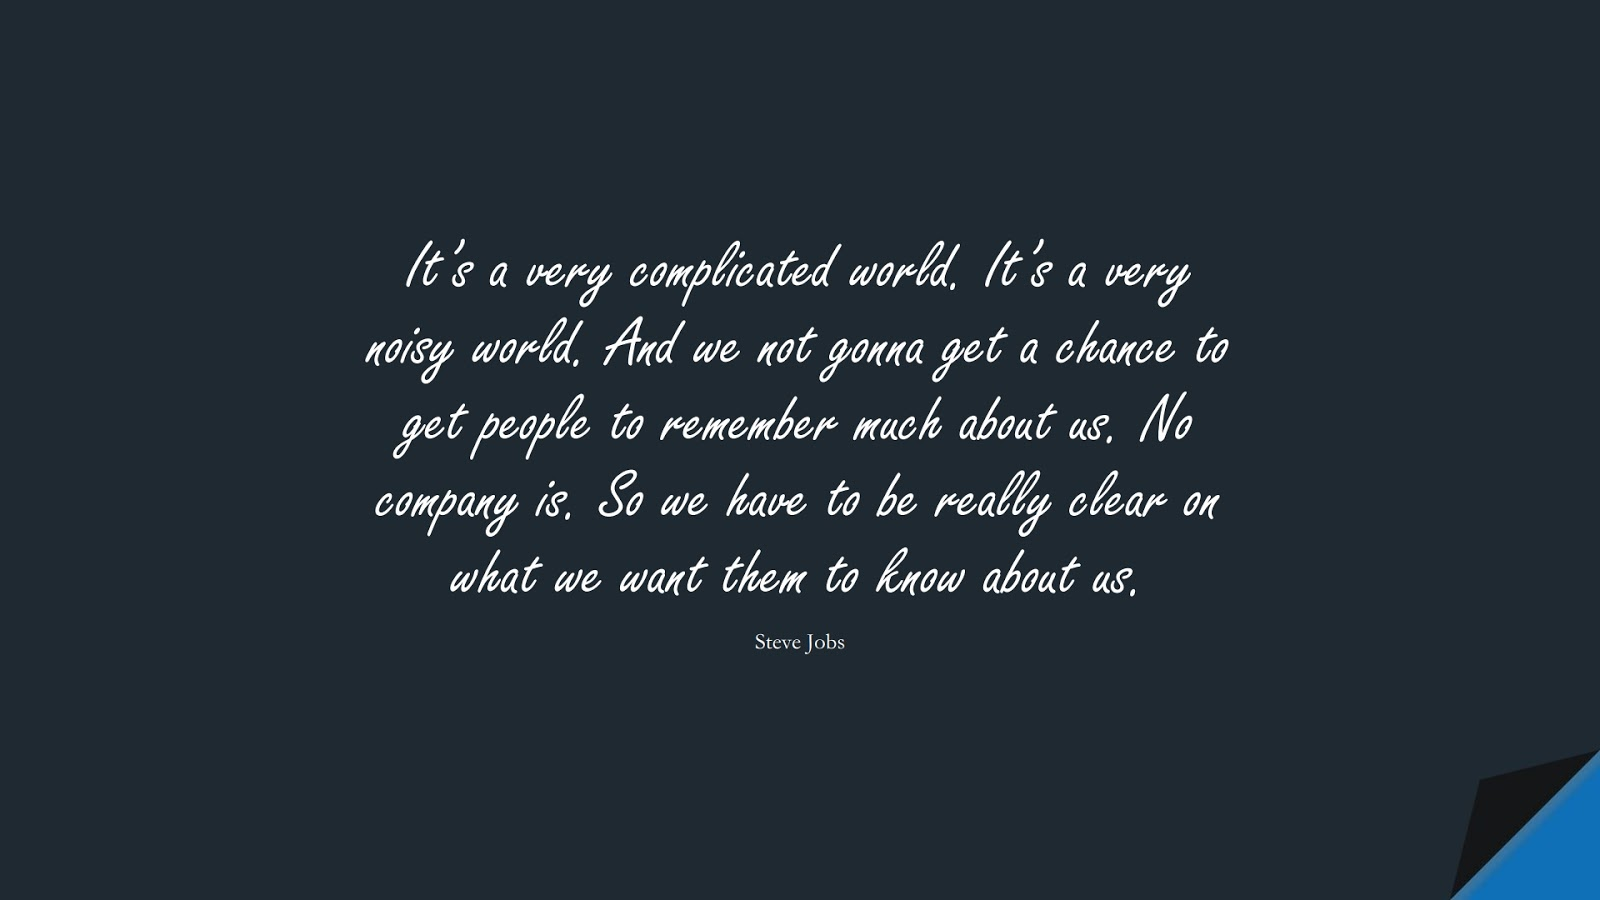 It's a very complicated world. It's a very noisy world. And we not gonna get a chance to get people to remember much about us. No company is. So we have to be really clear on what we want them to know about us. (Steve Jobs);  #SteveJobsQuotes